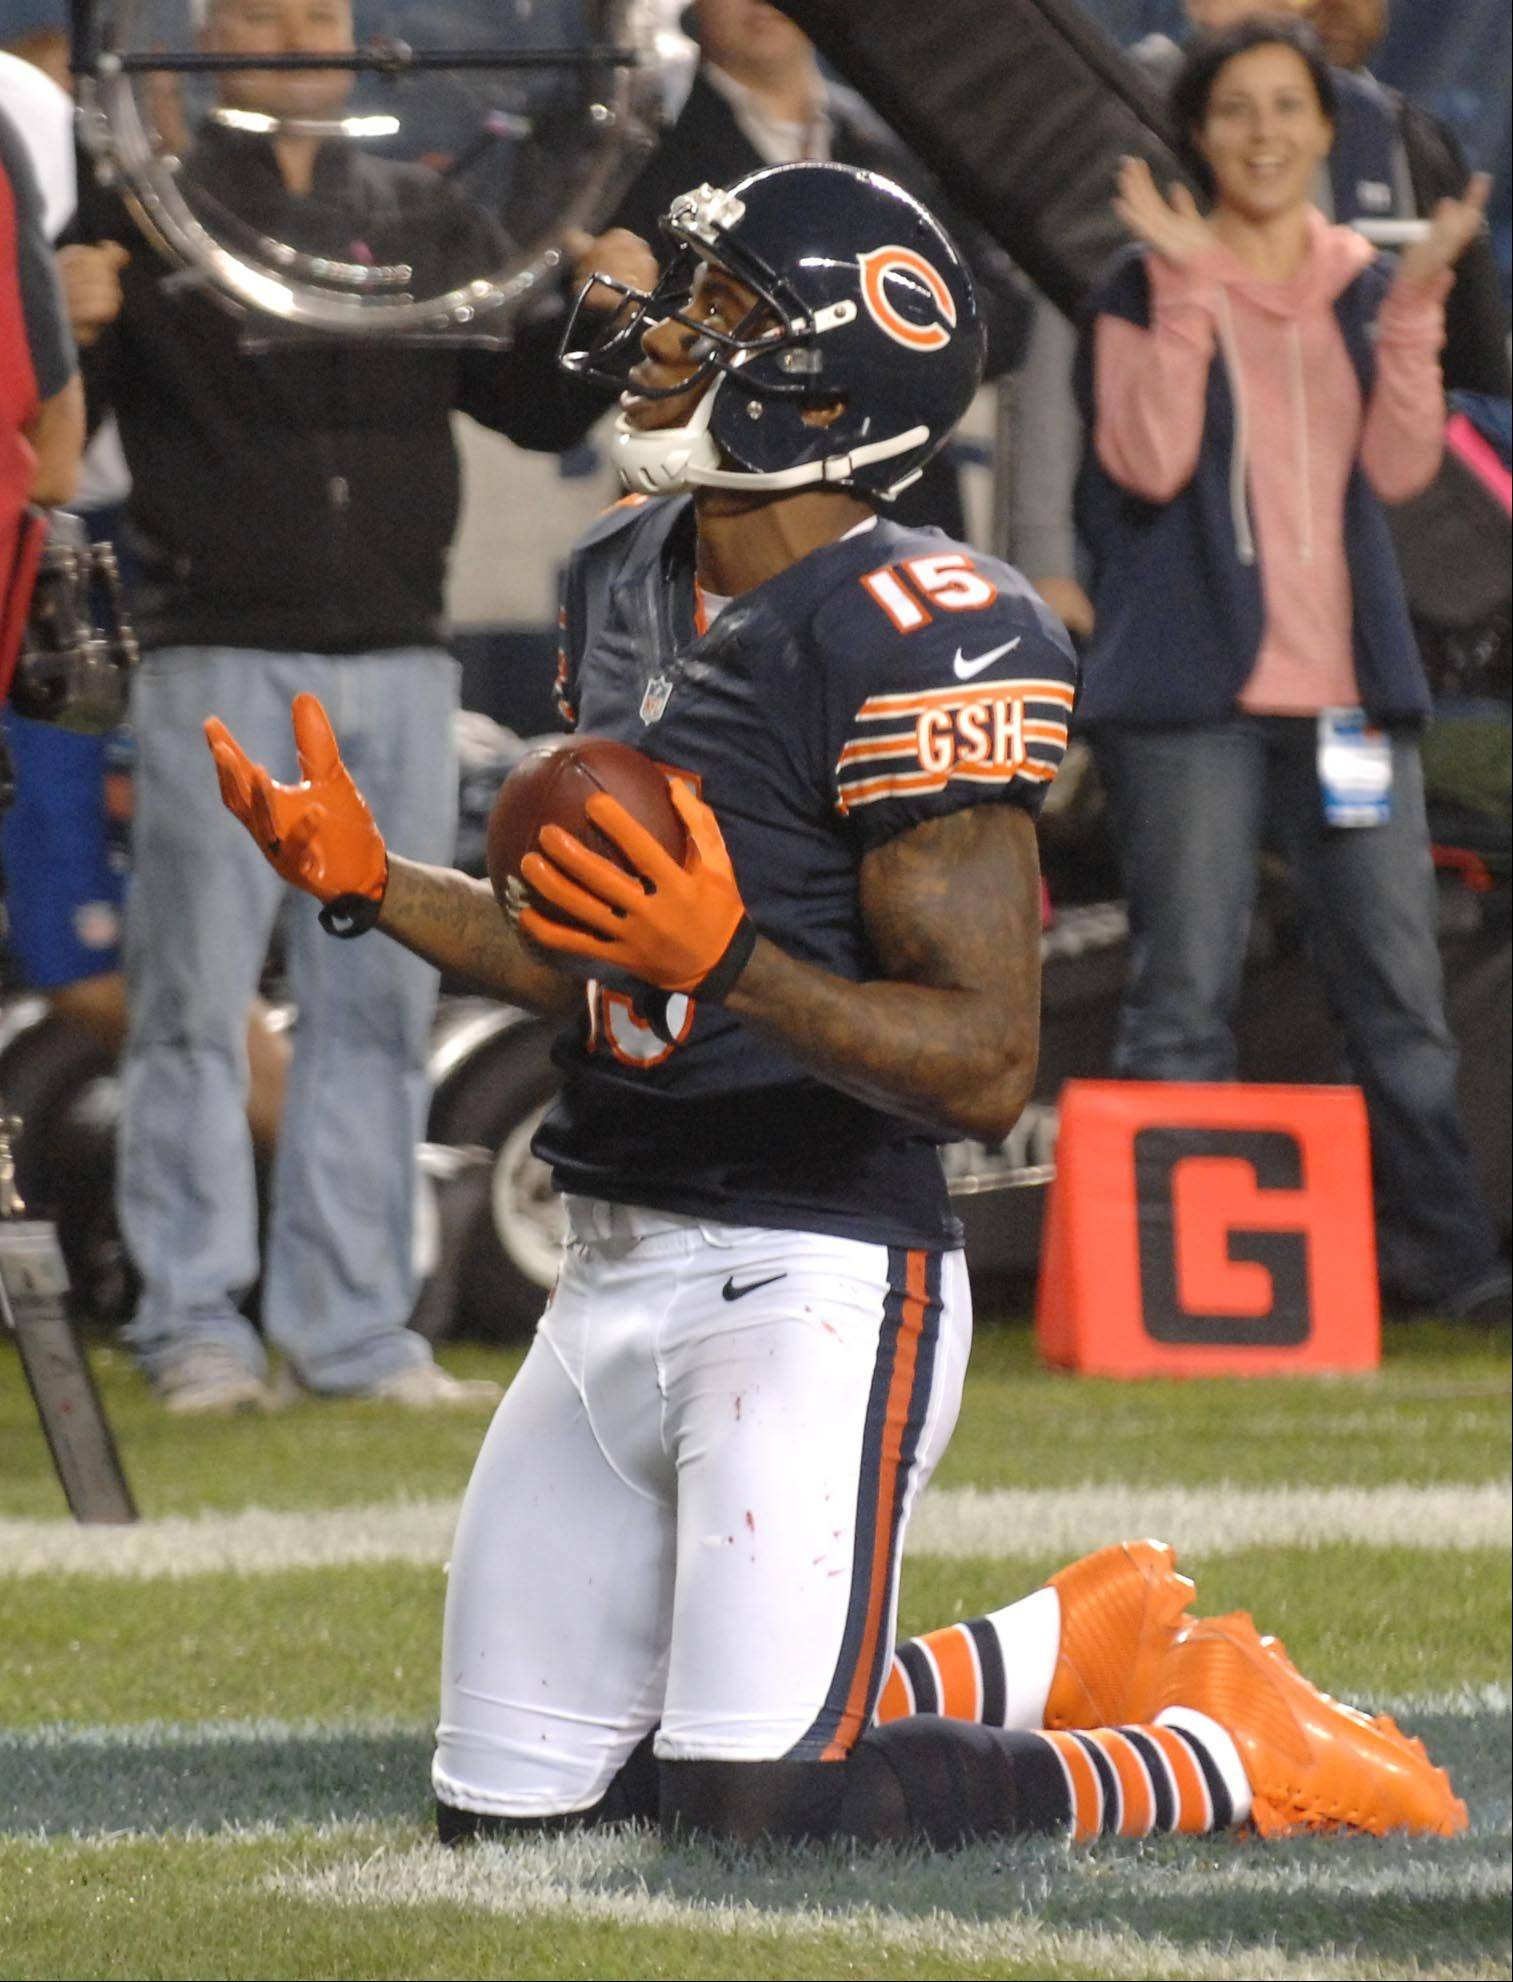 Chicago Bears wide receiver Brandon Marshall reacts after scoring in the first quarter.